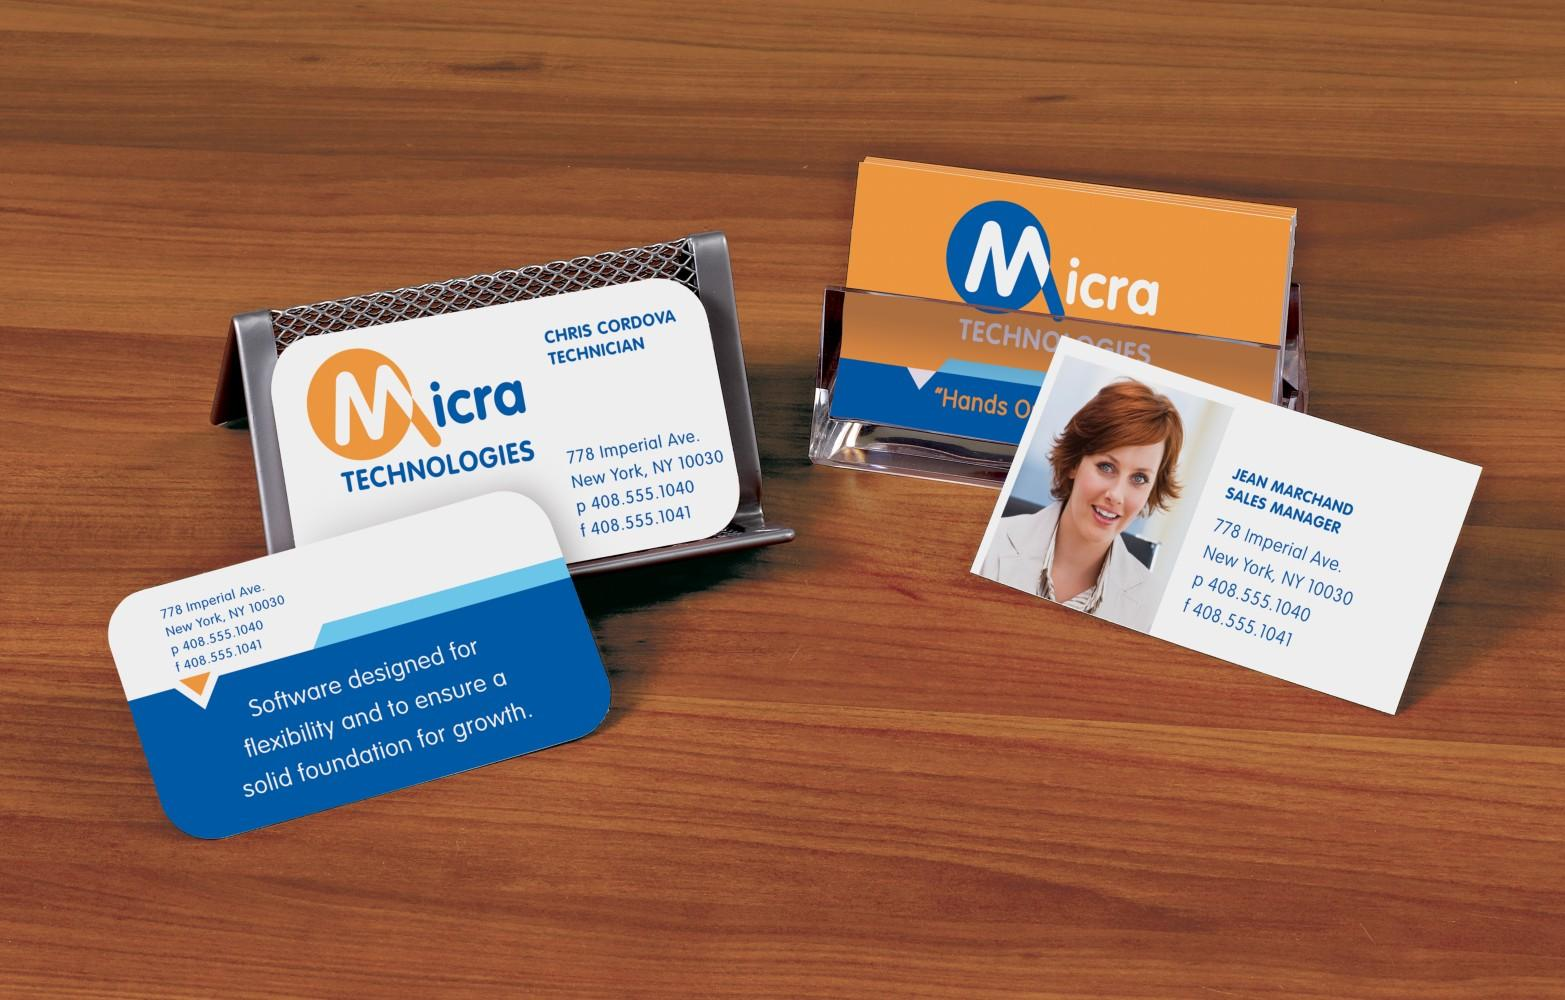 75 business card tips to help double your business business 75 business card tips to help double your business magicingreecefo Gallery